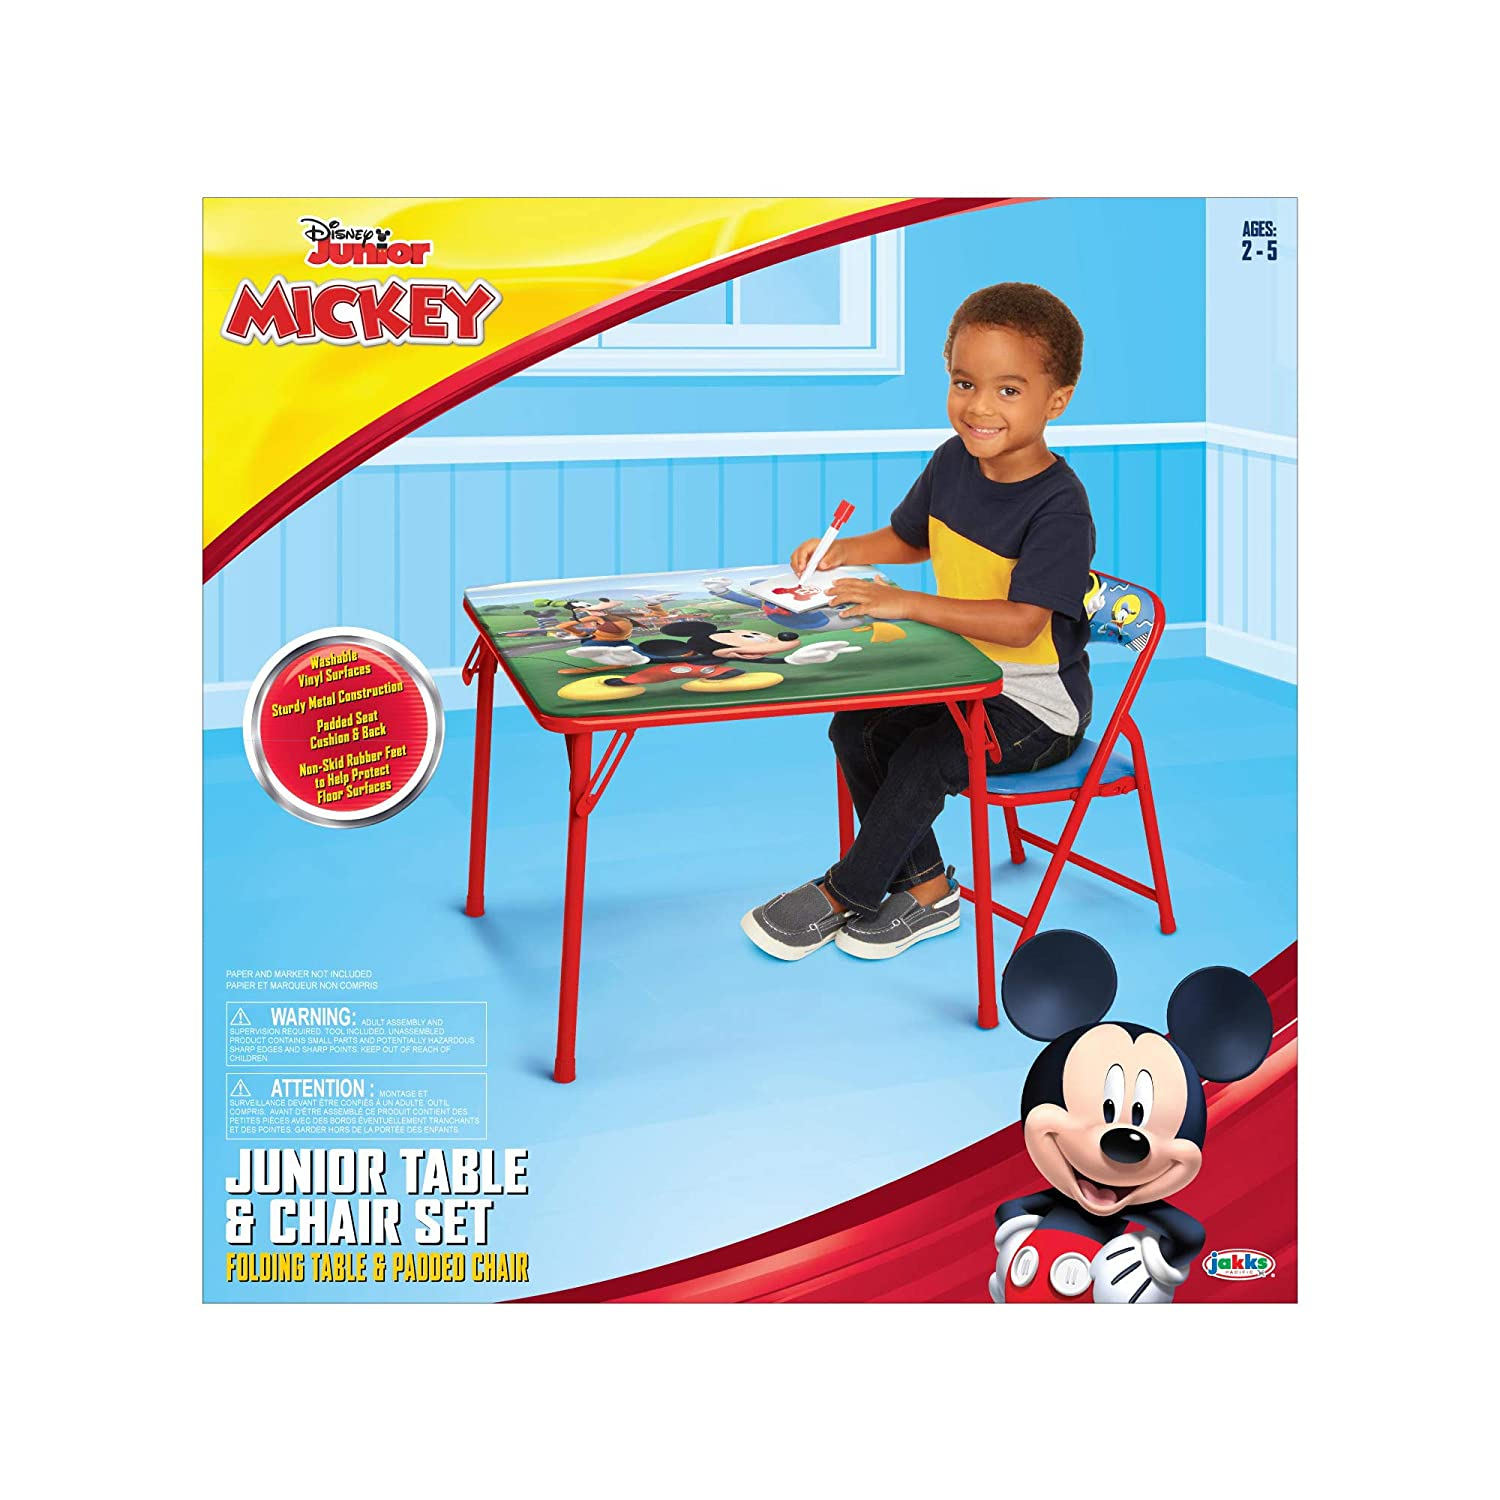 ad2384a7e1e Amazon.com: Dinsey Junior Mickey, Junior Table & Chair Set, Folding Table &  Padded Chairs: Toys & Games